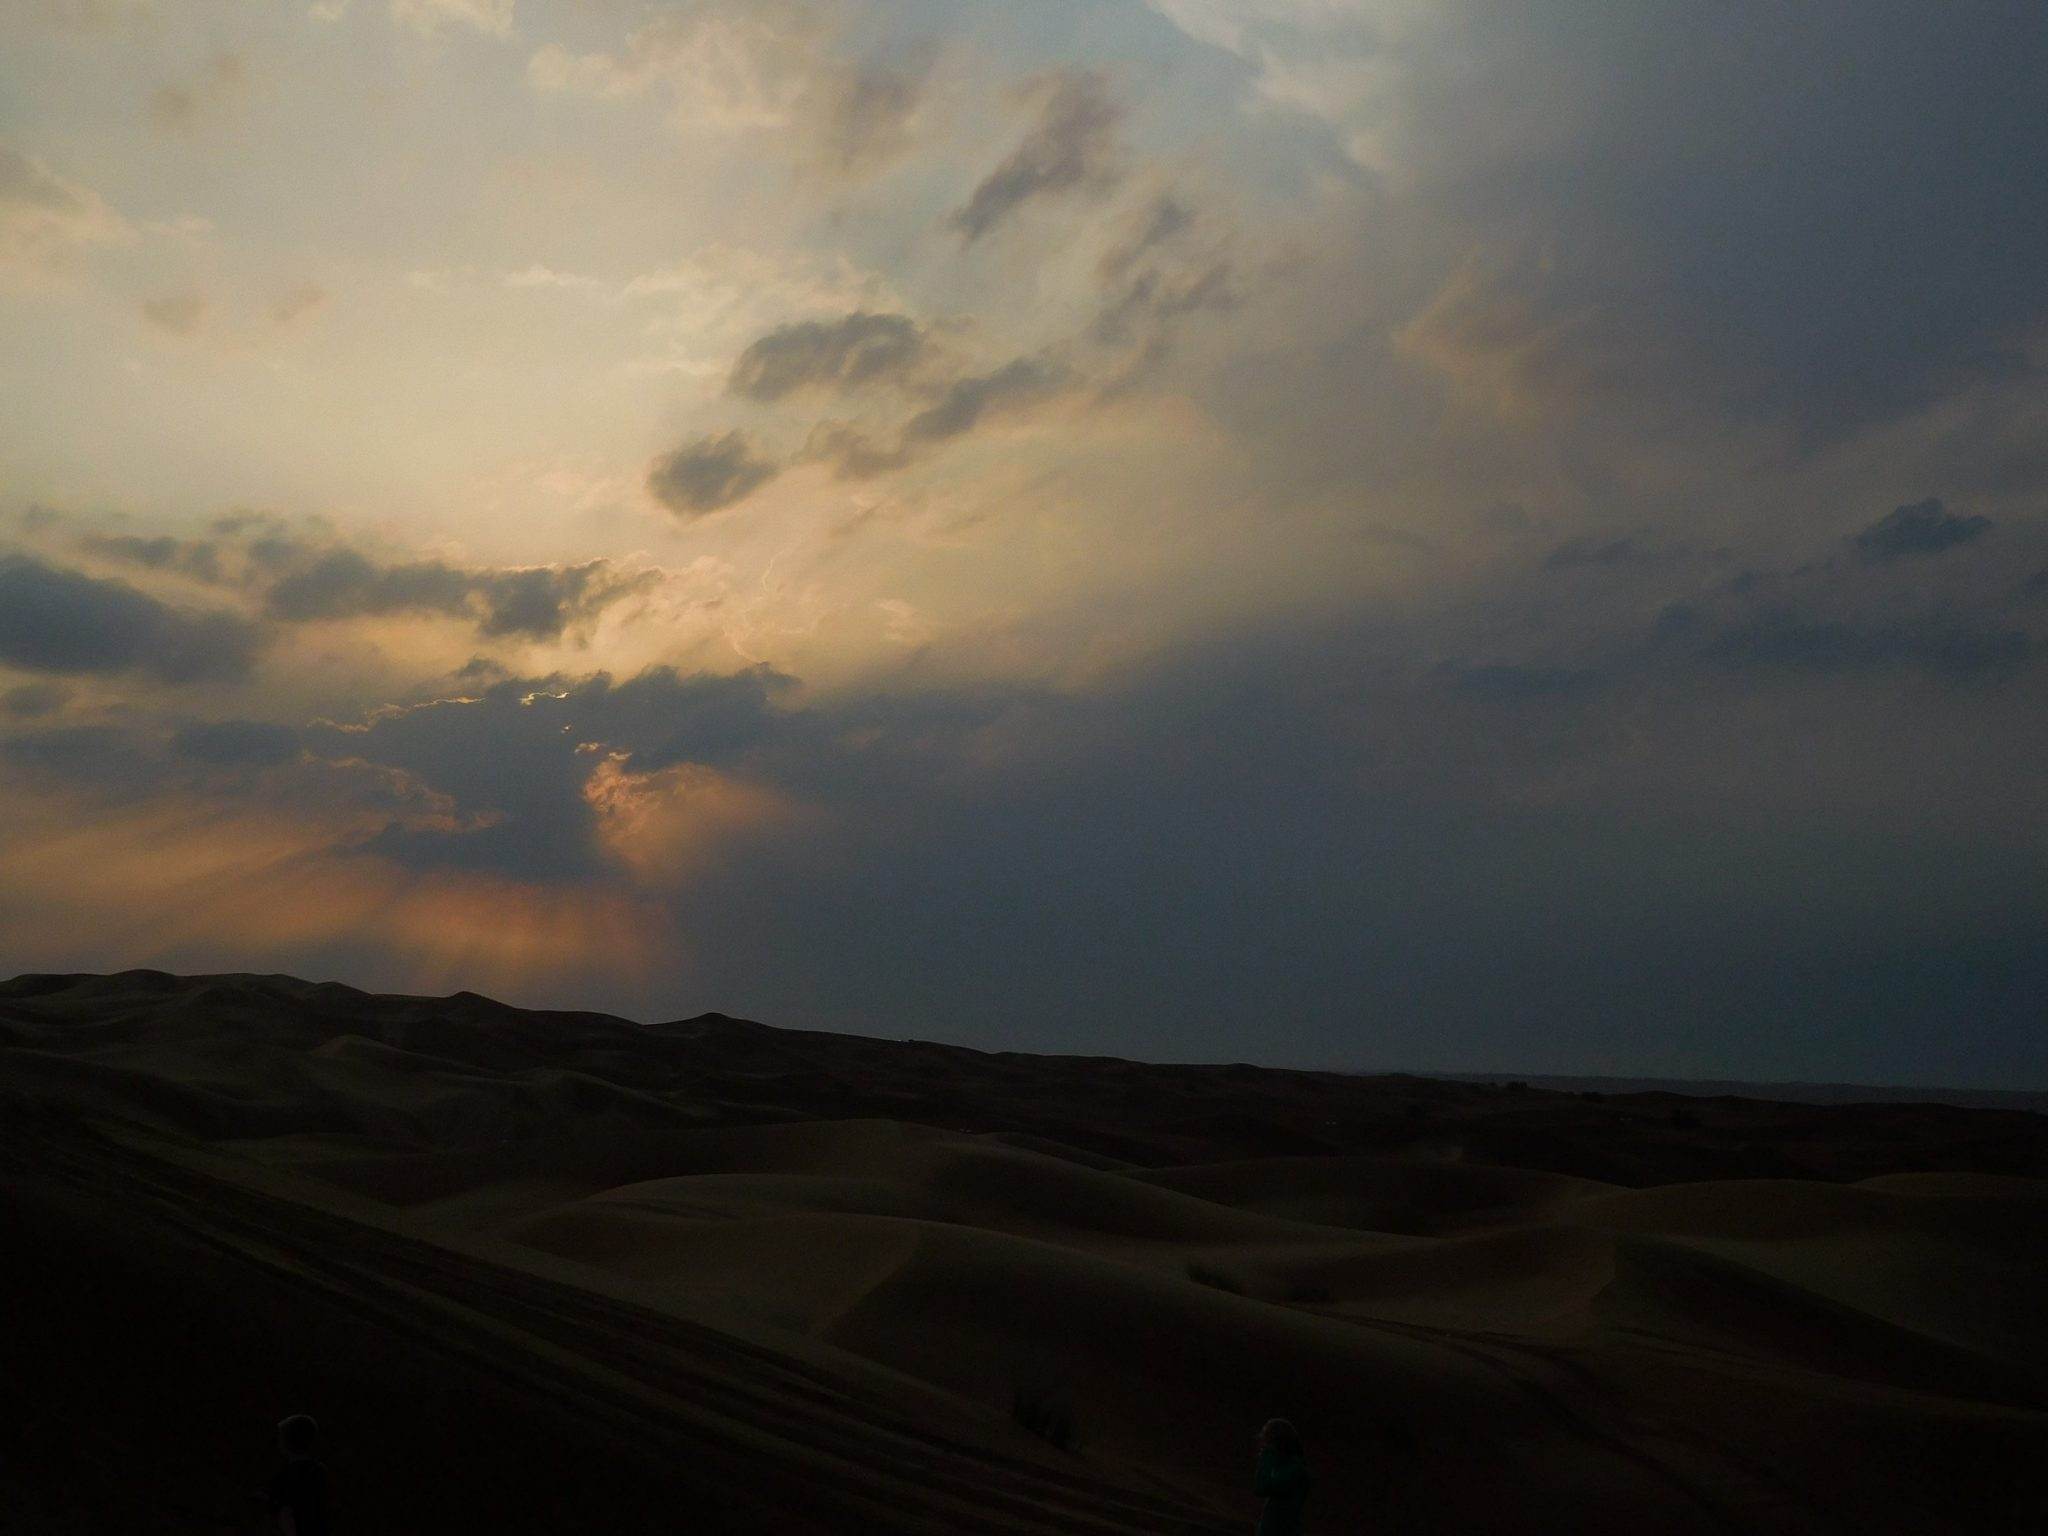 Dubai Safari Sunset over the Dunes